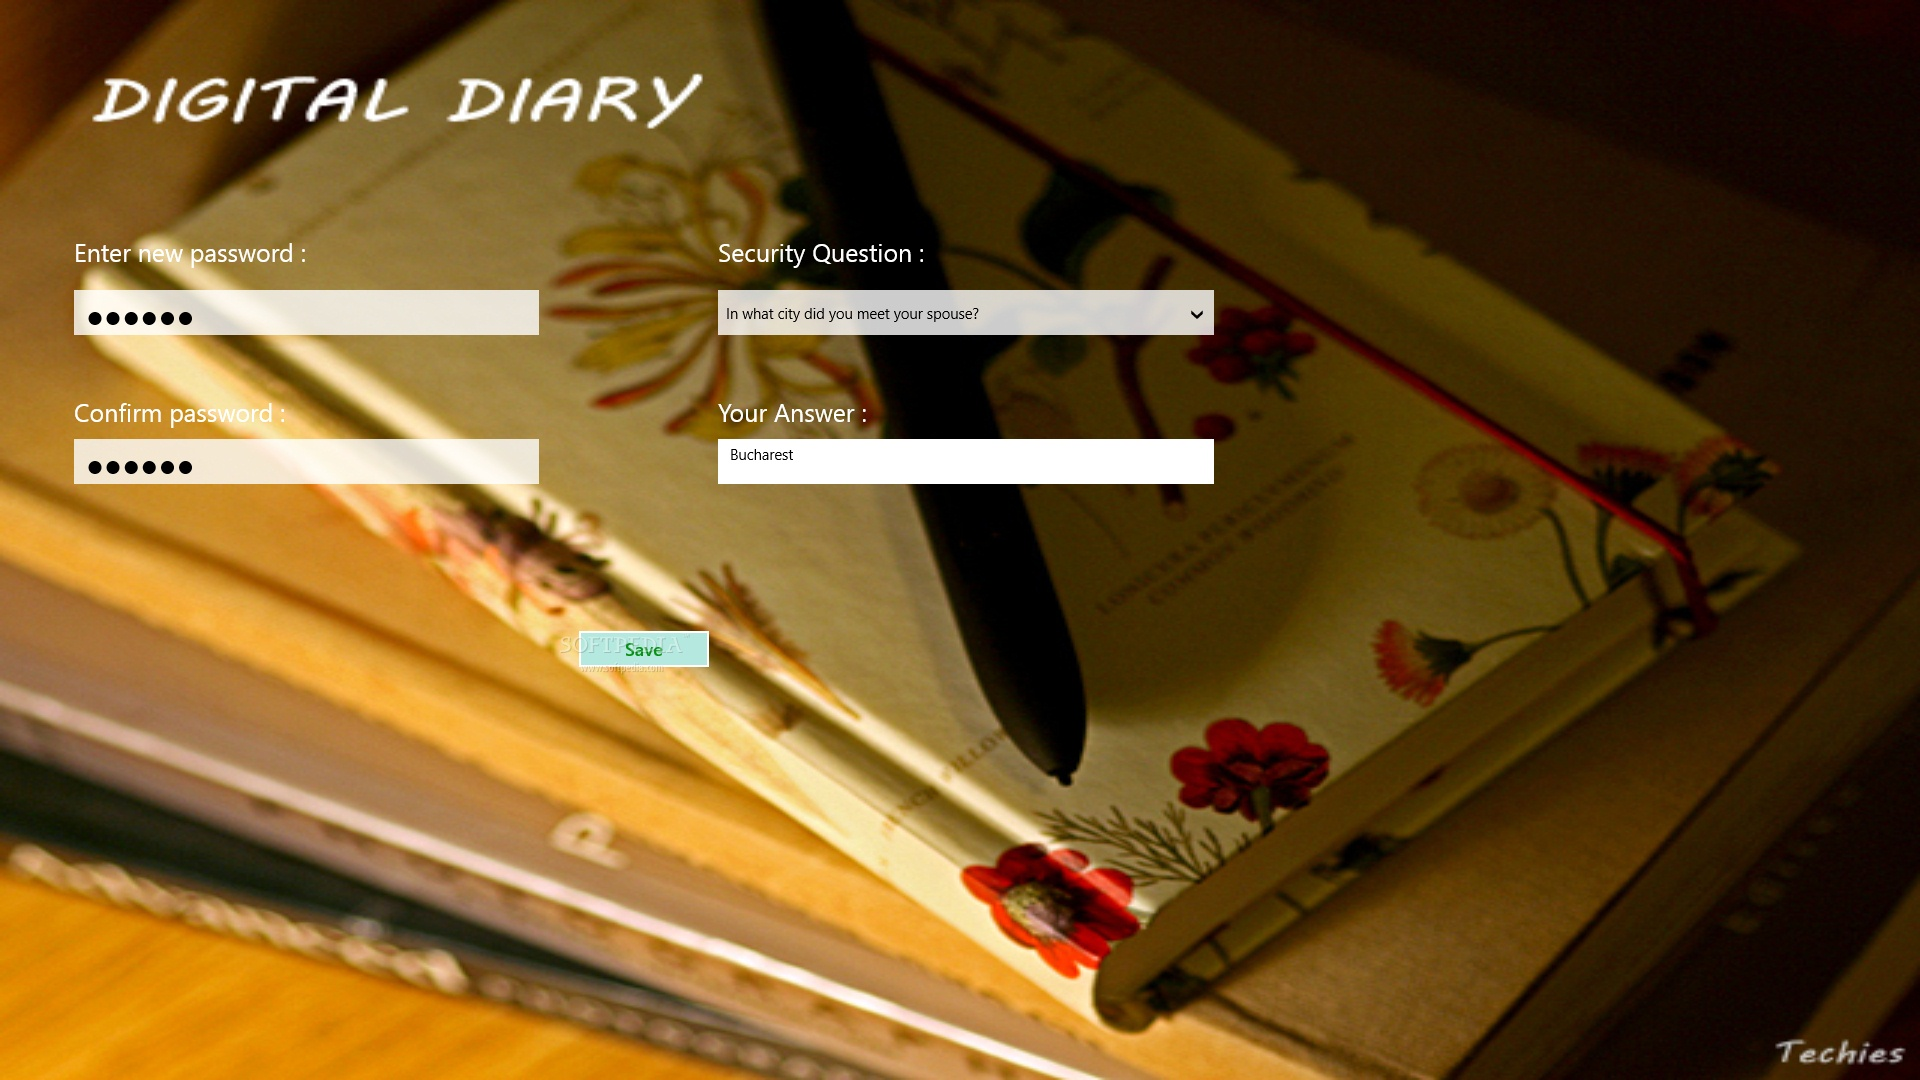 Download digital diary for windows 10/8. 1 3. 0. 0. 4.